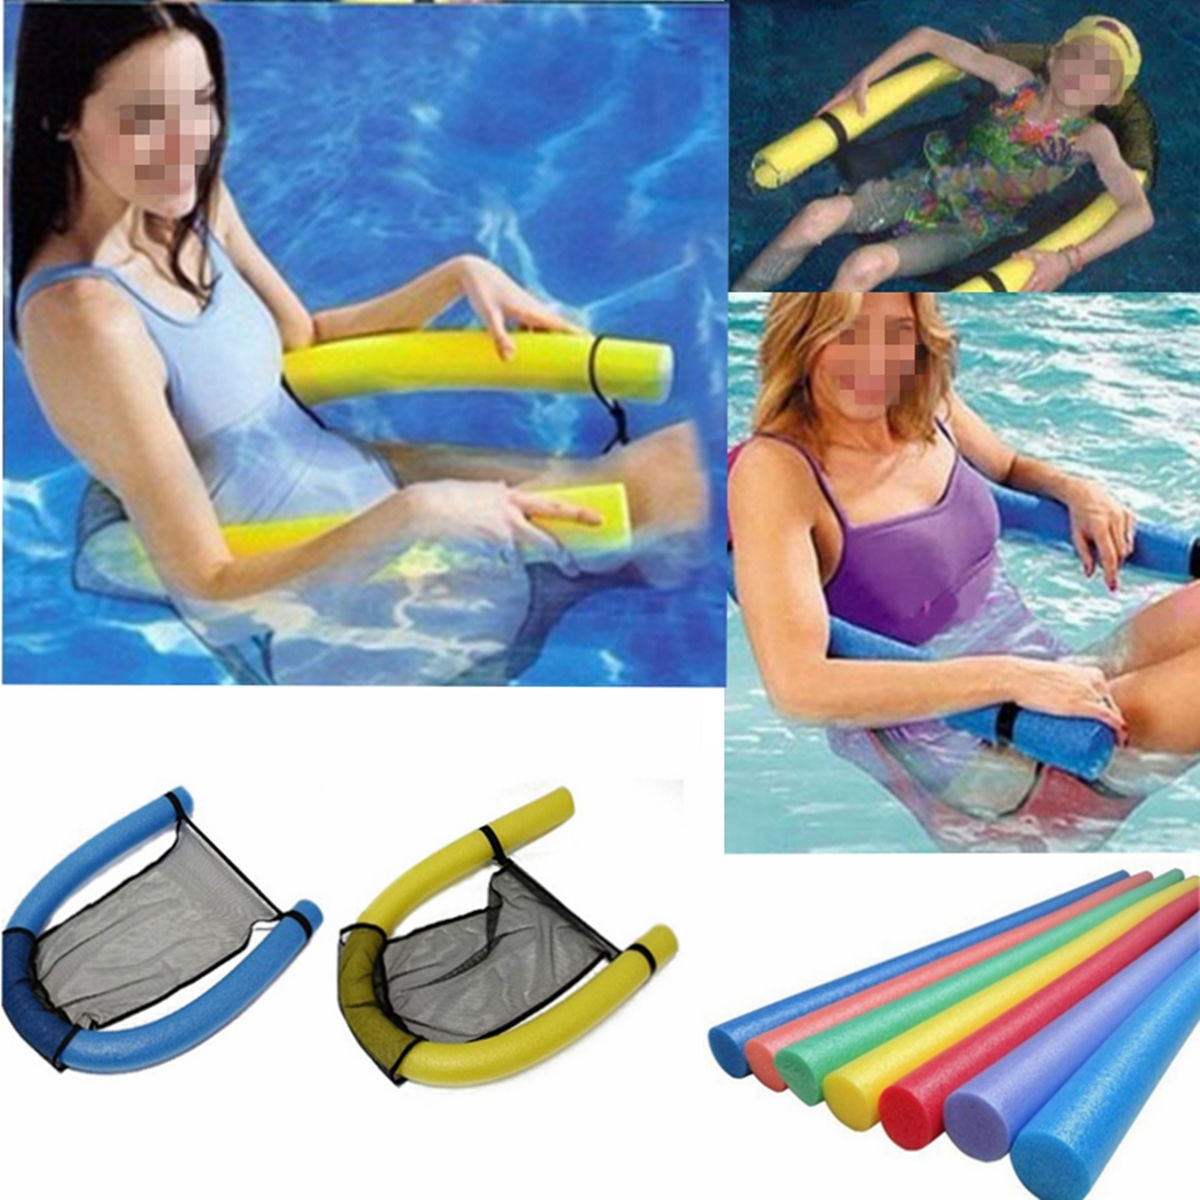 Exceptionnel Pool Noodle Chair For Adults/Kids 977471